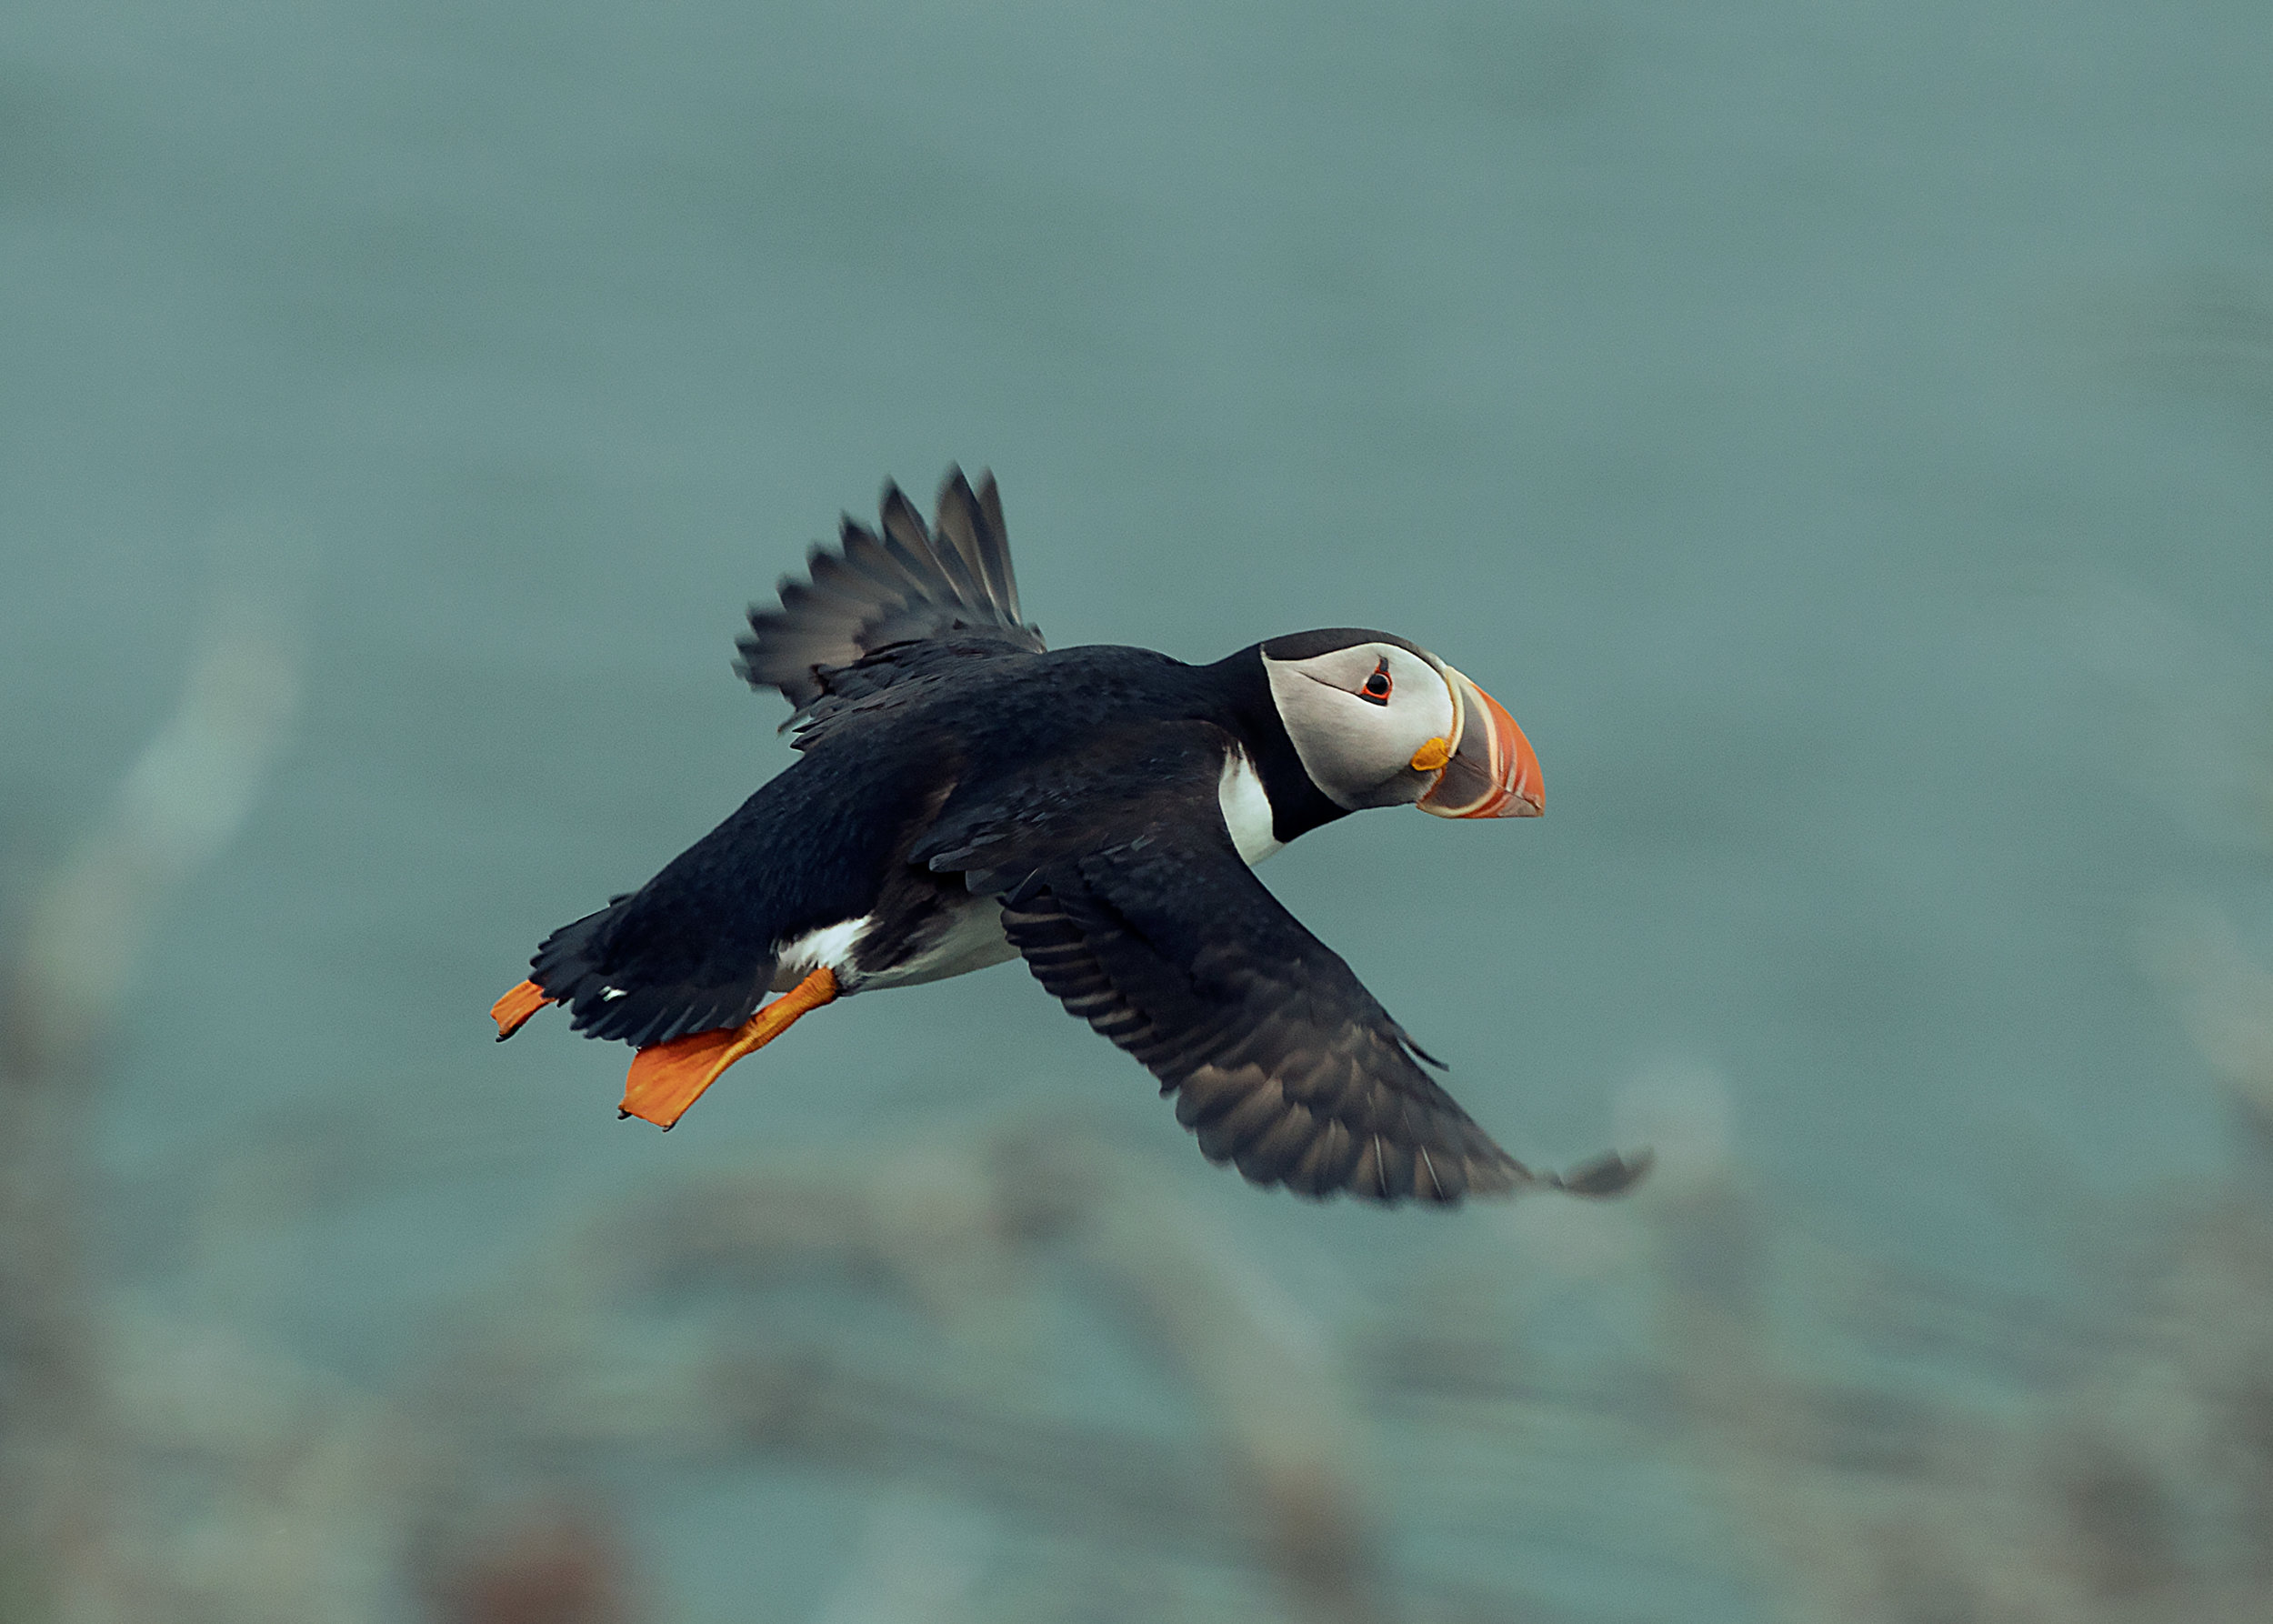 flight-of-the-puffin.jpg